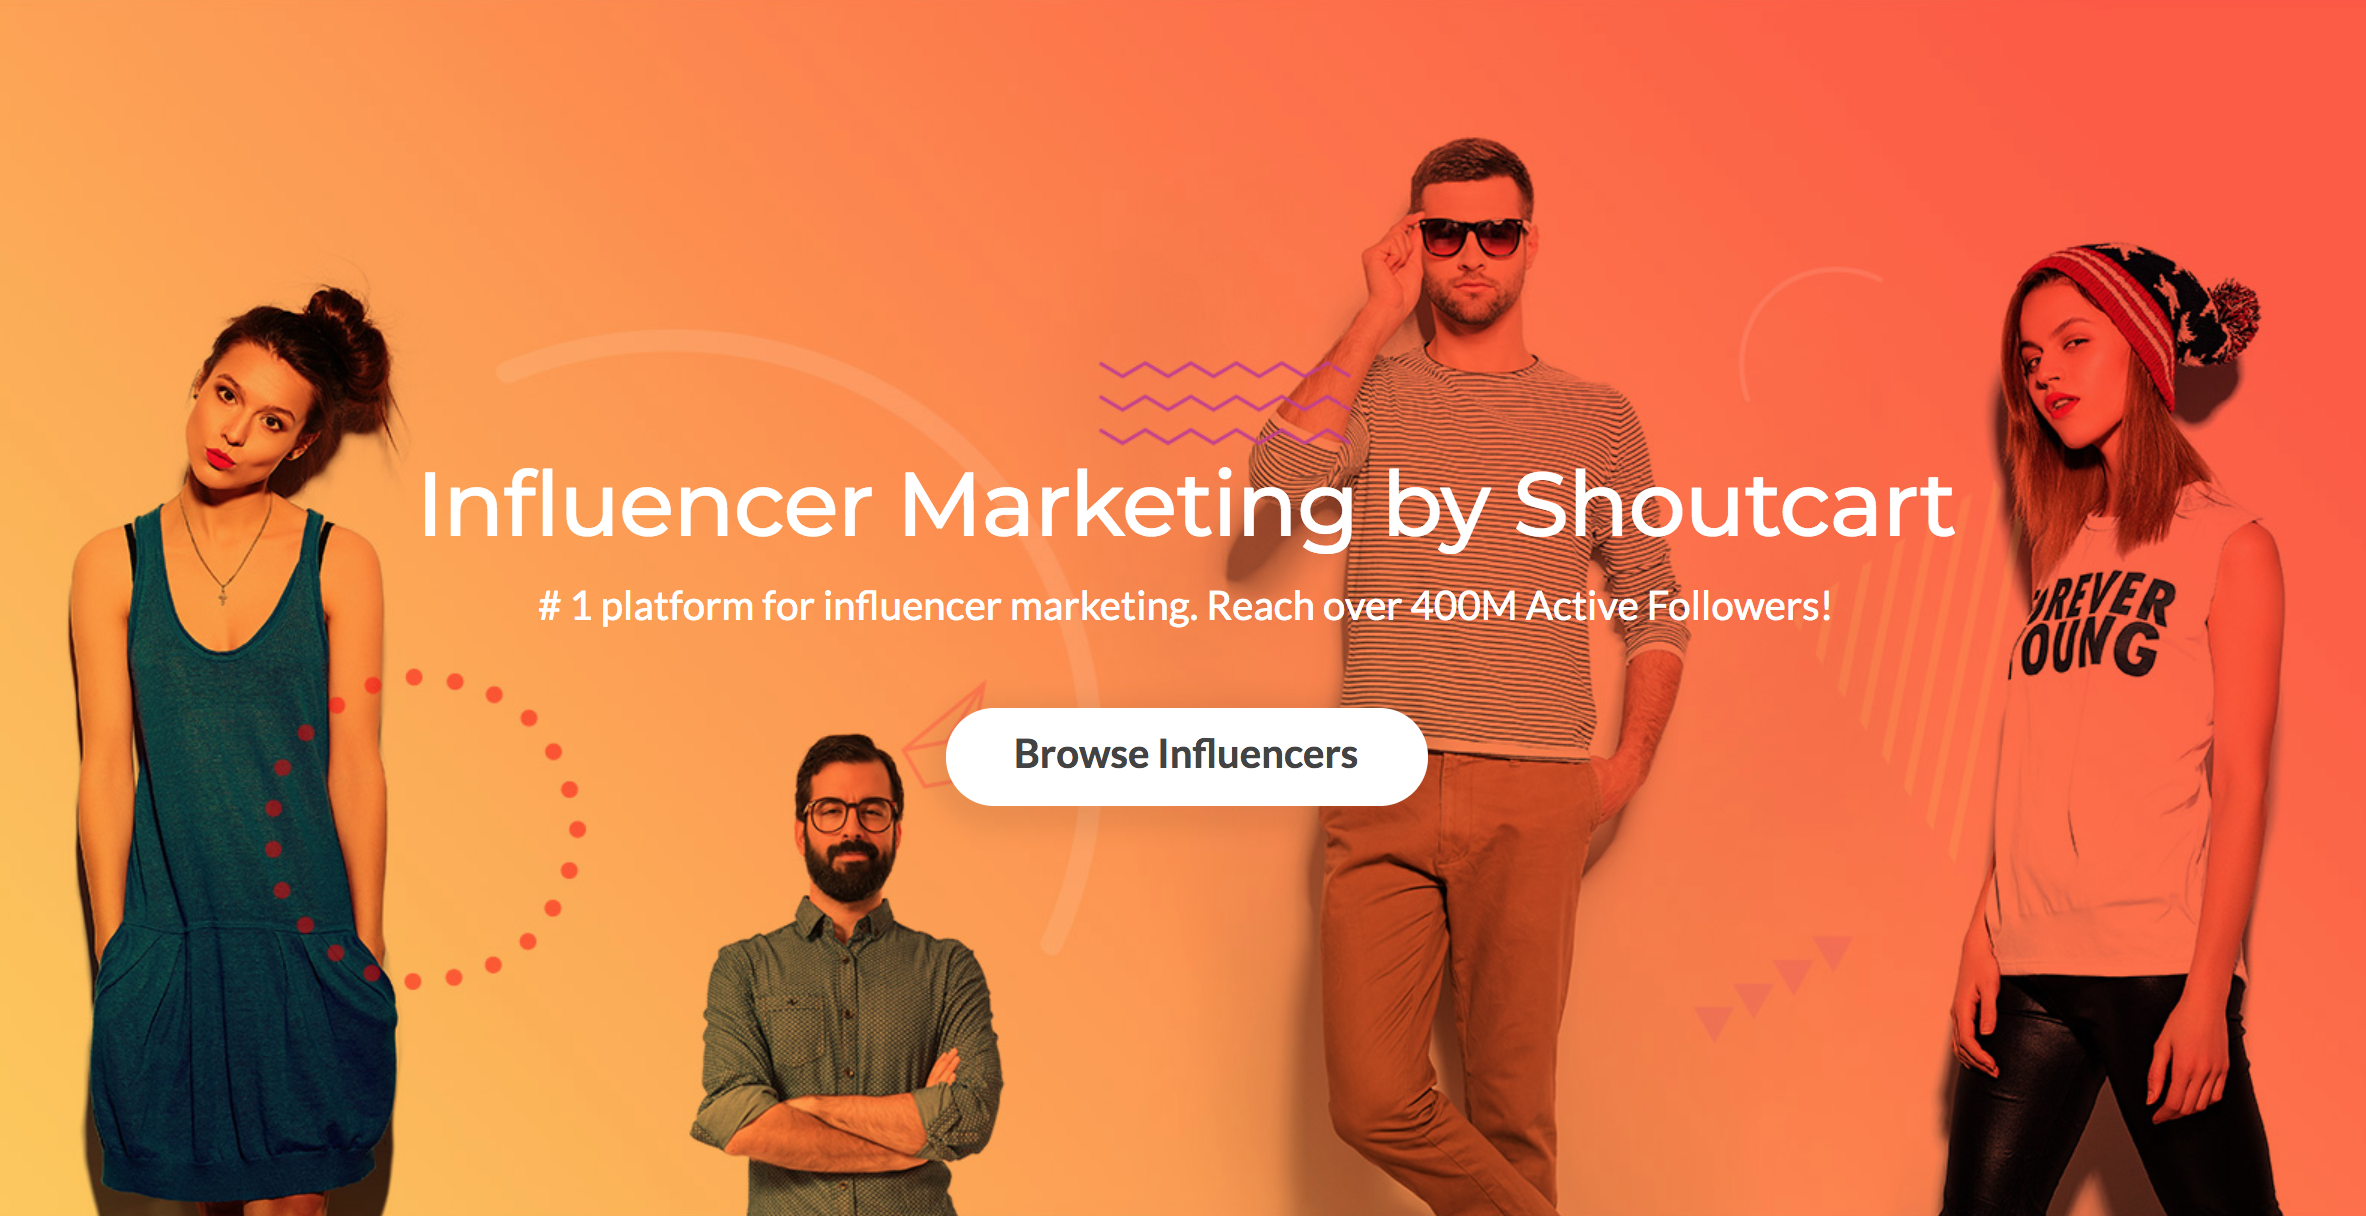 Shoutcart influencers marketing platform 400 million